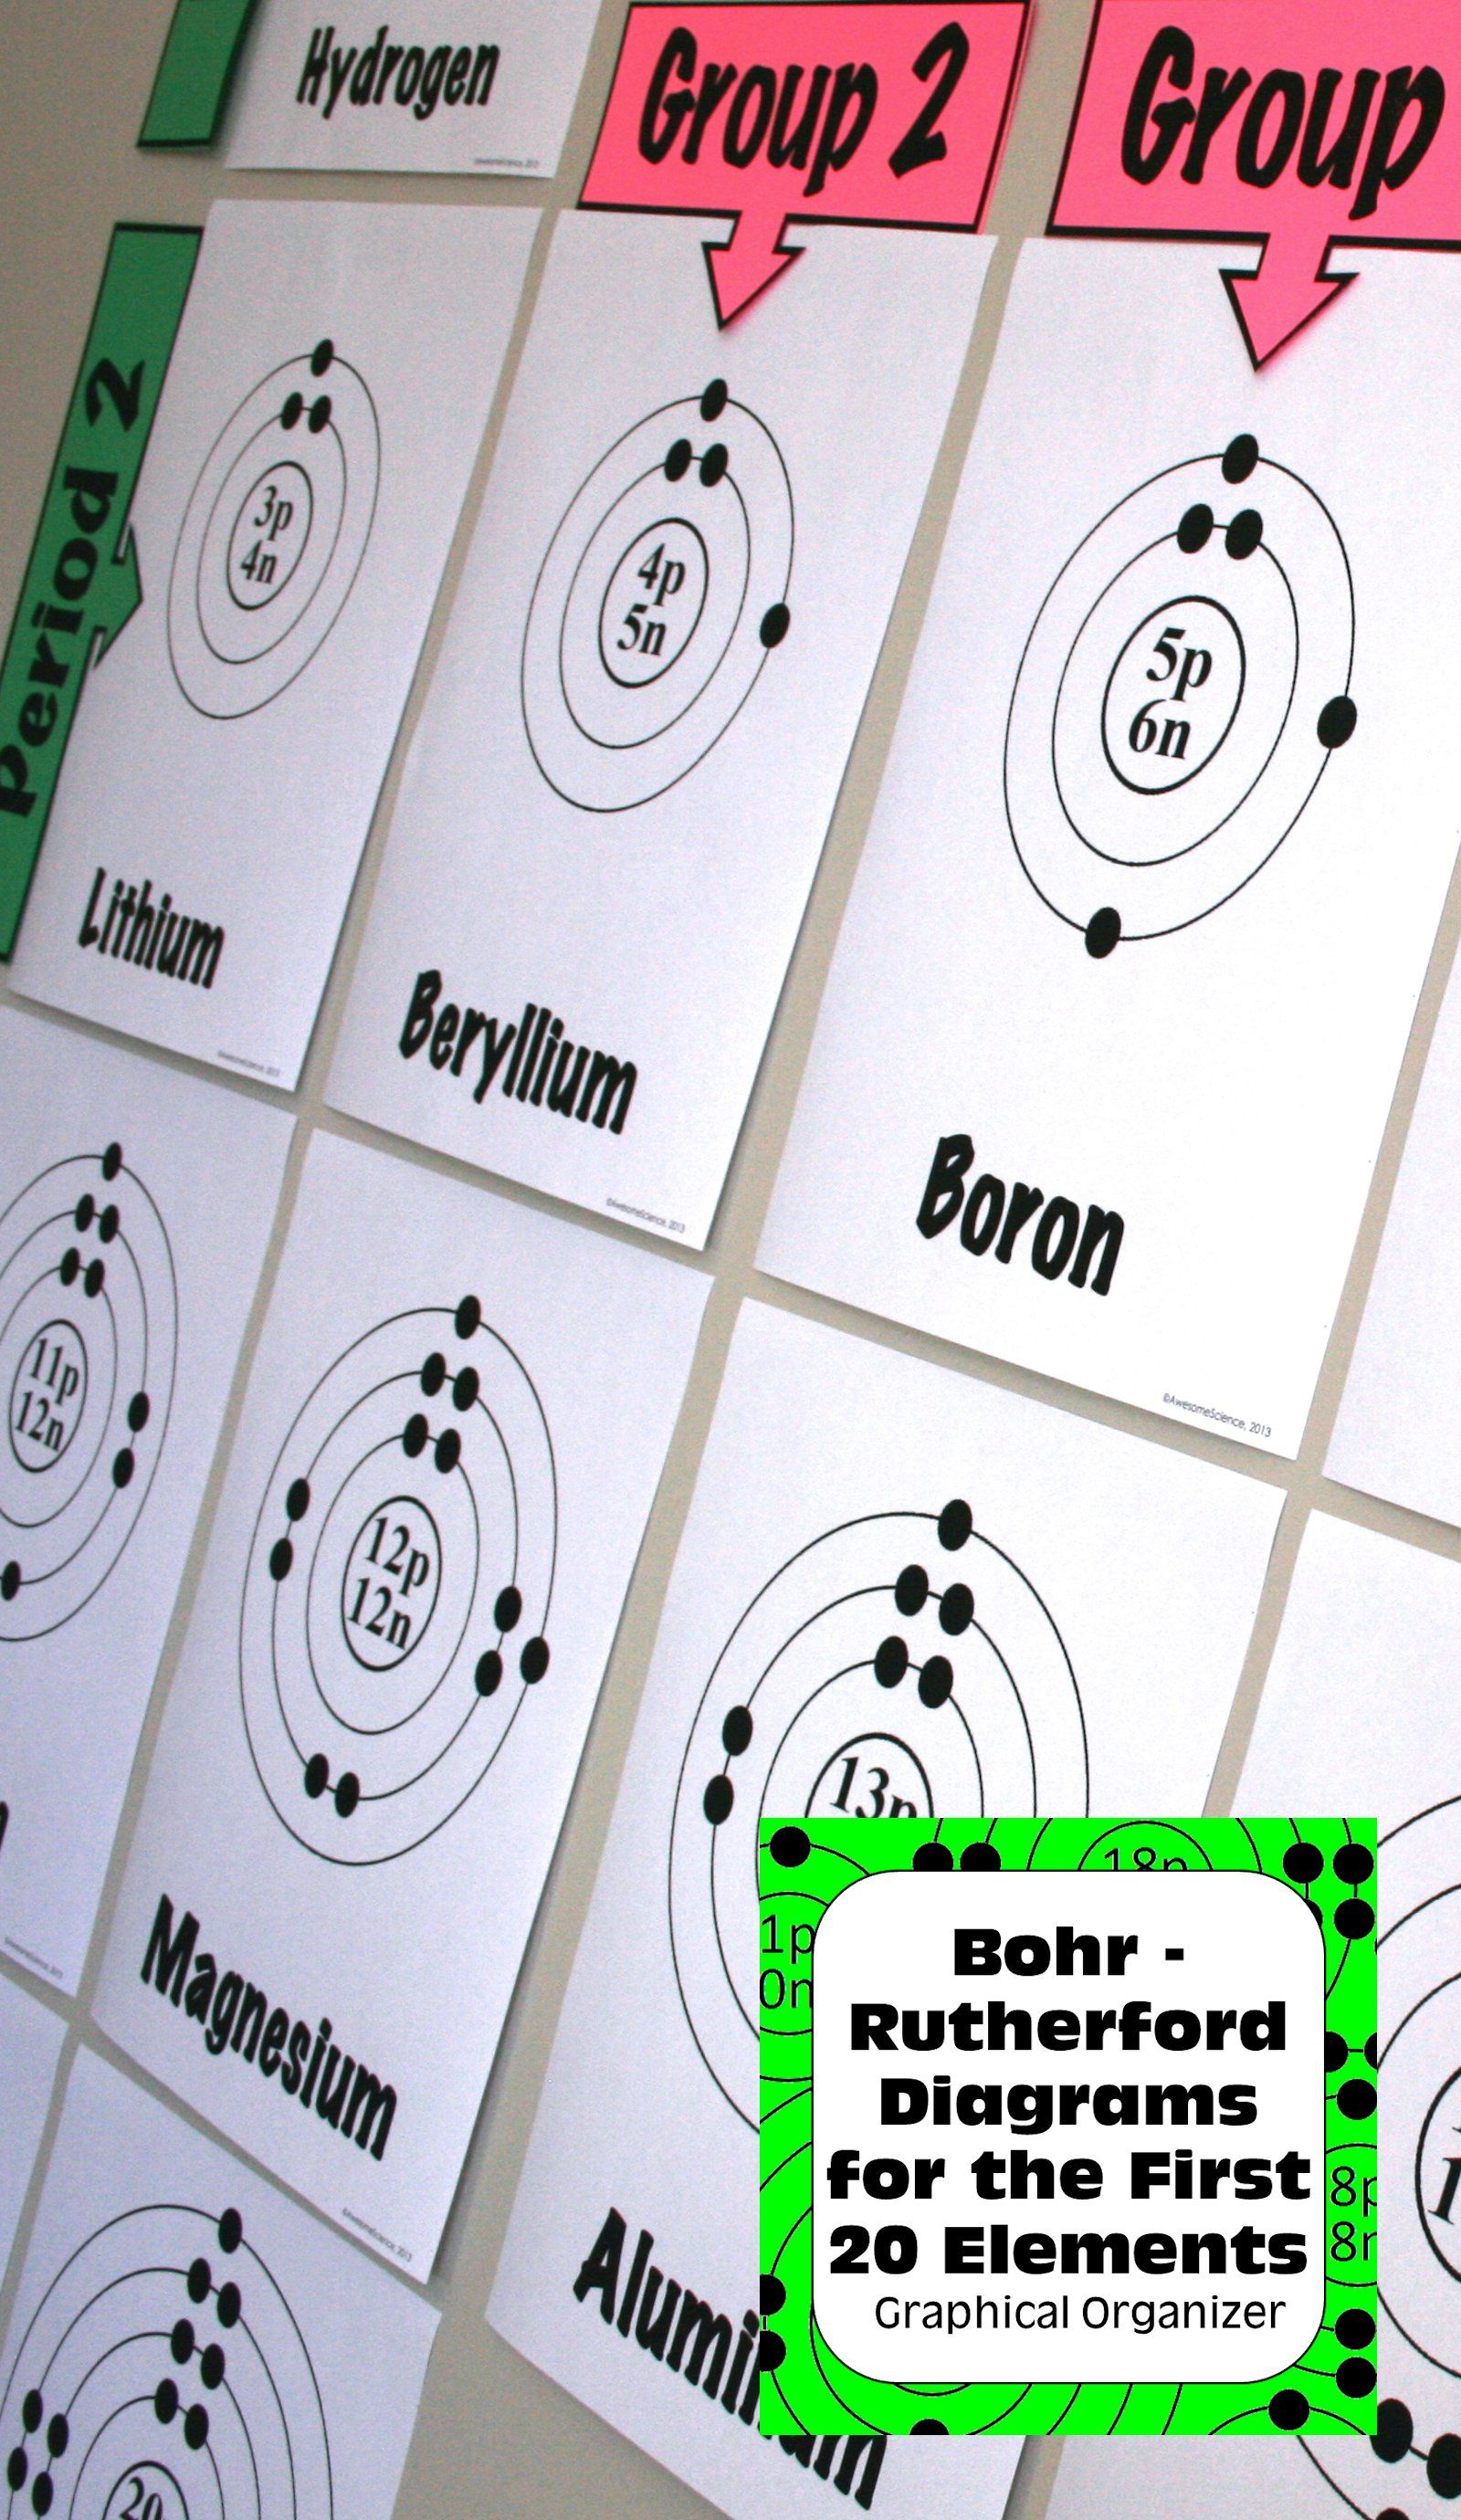 Atomic Structure Bohr Models Bohr Rutherford Diagrams For